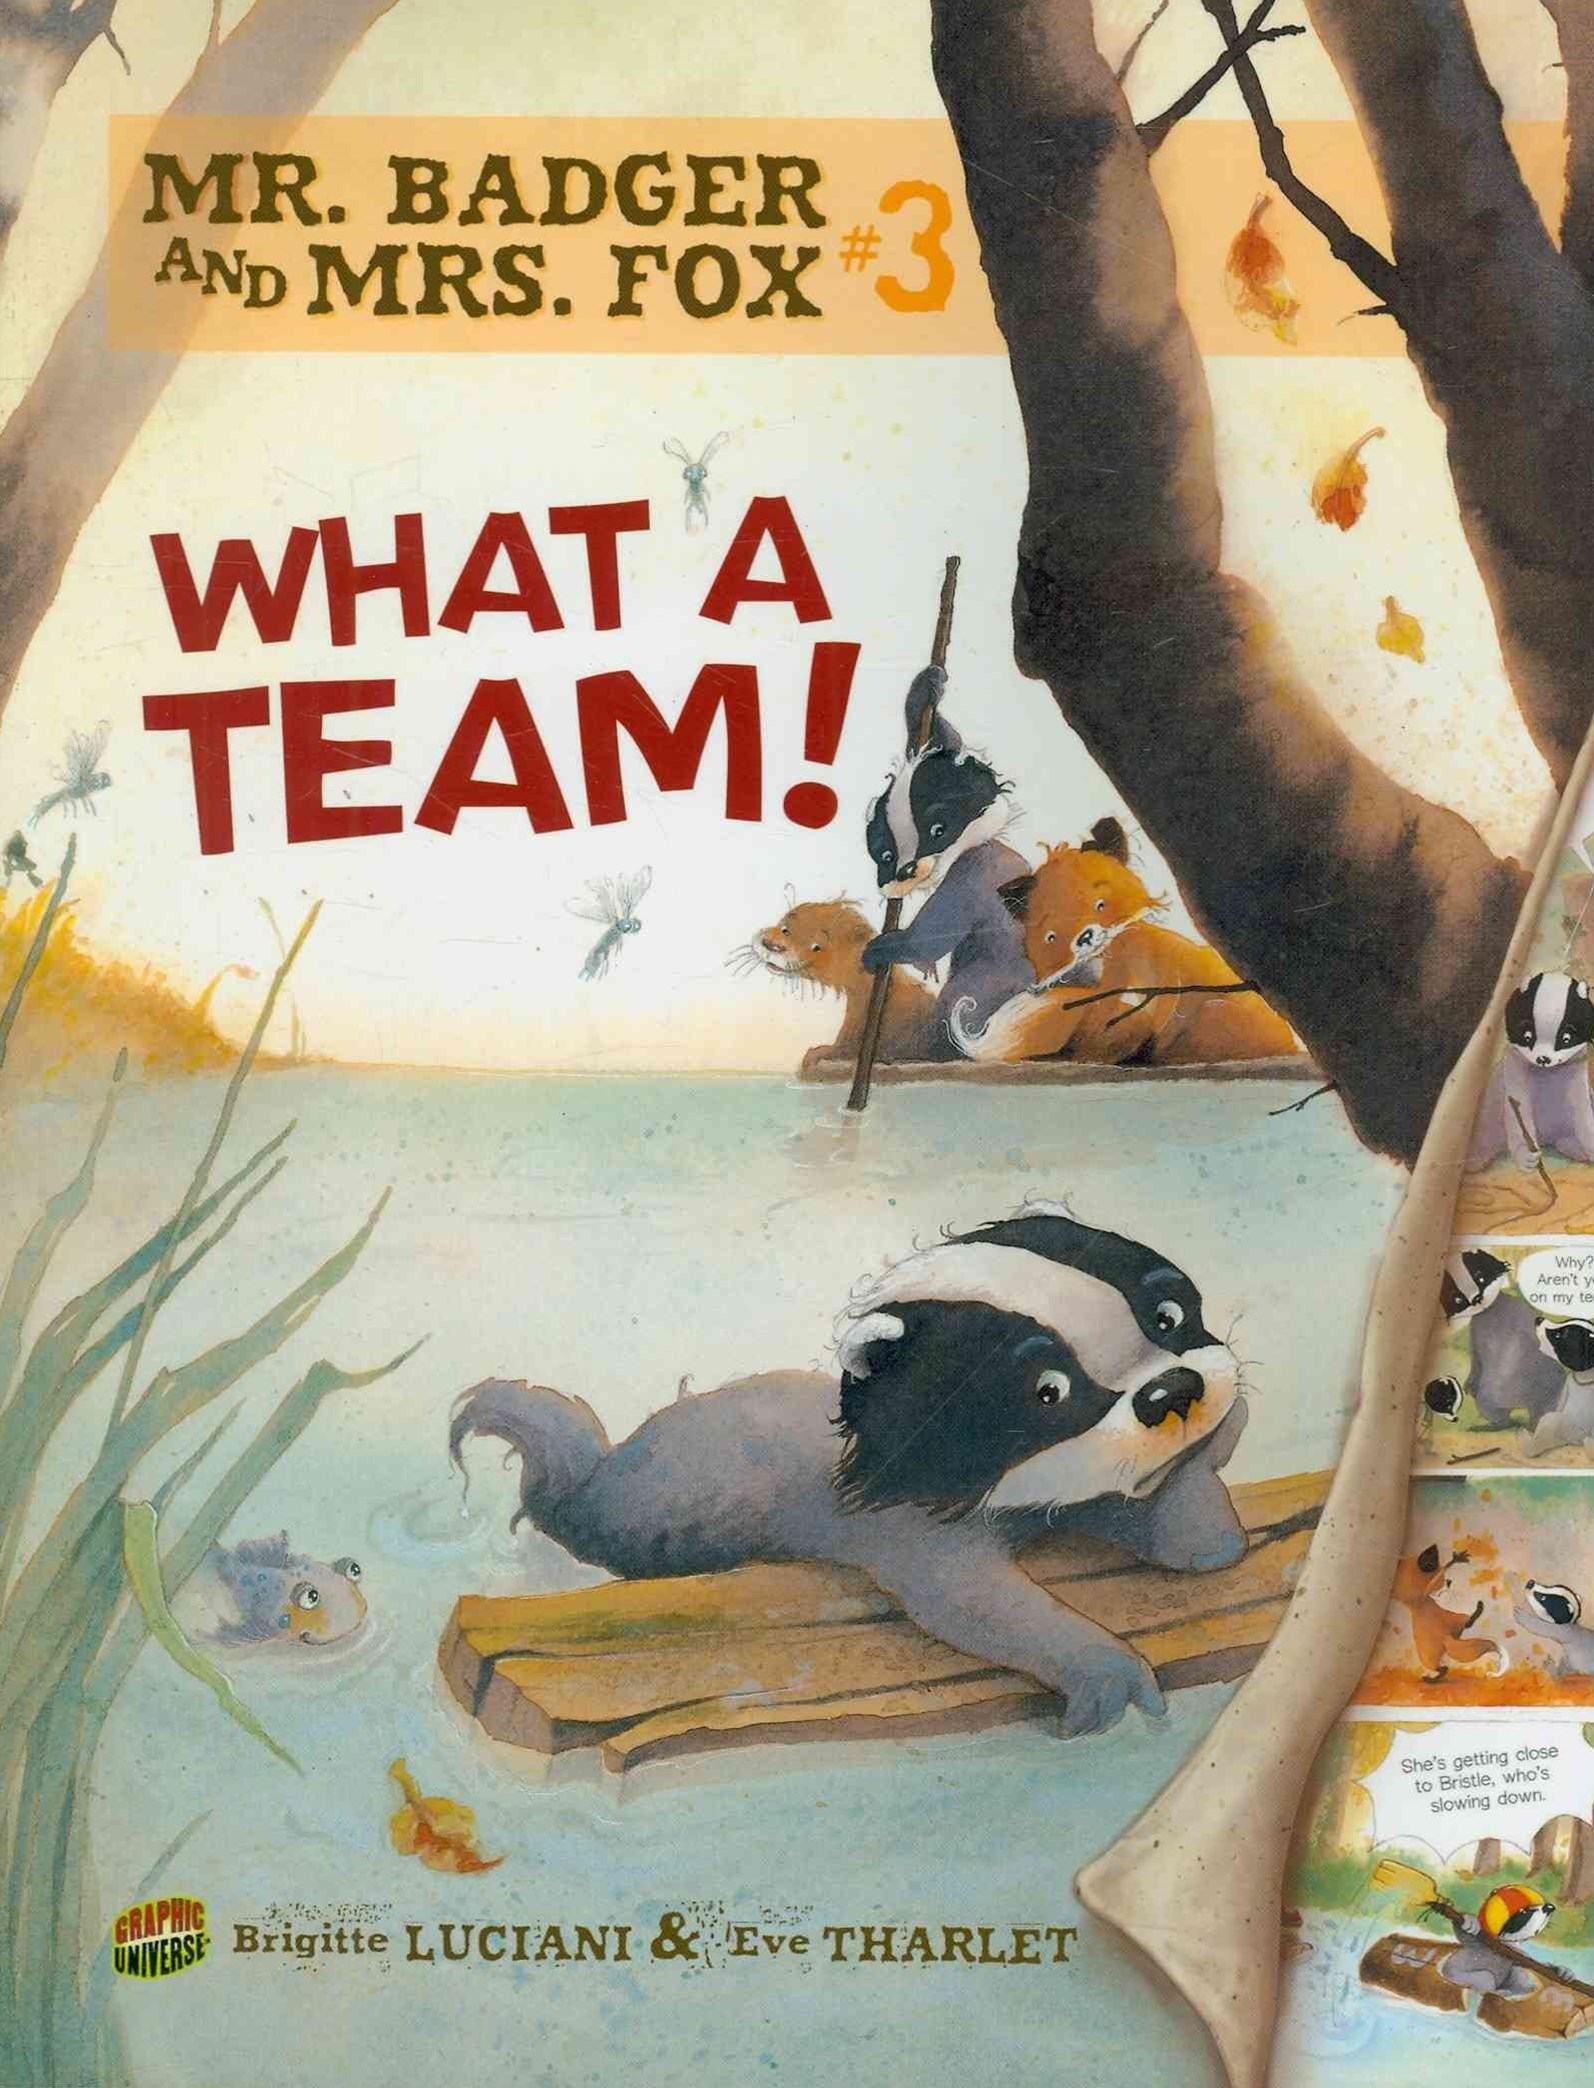 Mr Badger and Mrs Fox Book 3: What A Team